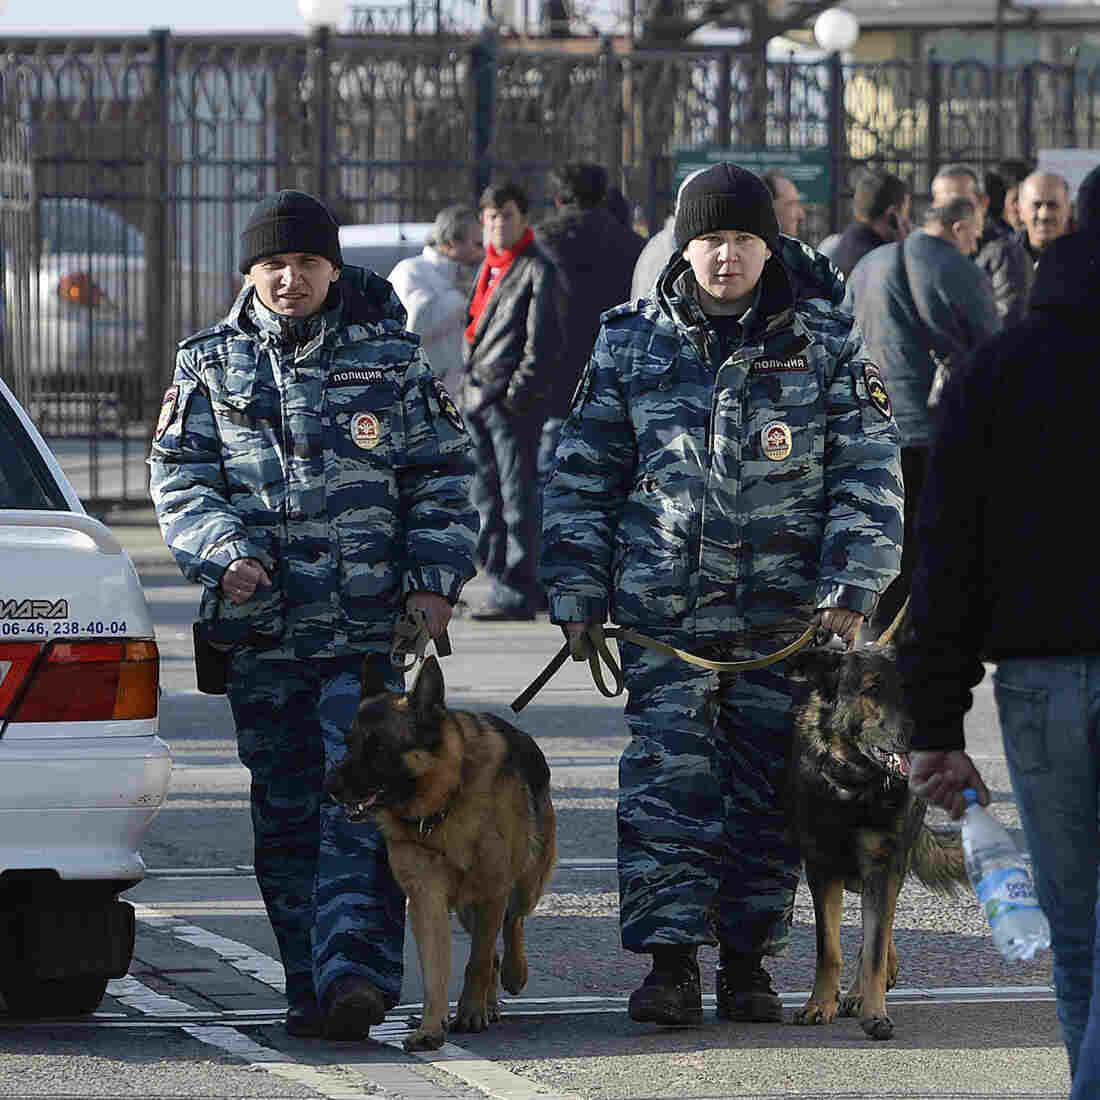 Russia Aims To Implement The Tightest Security In Olympic History